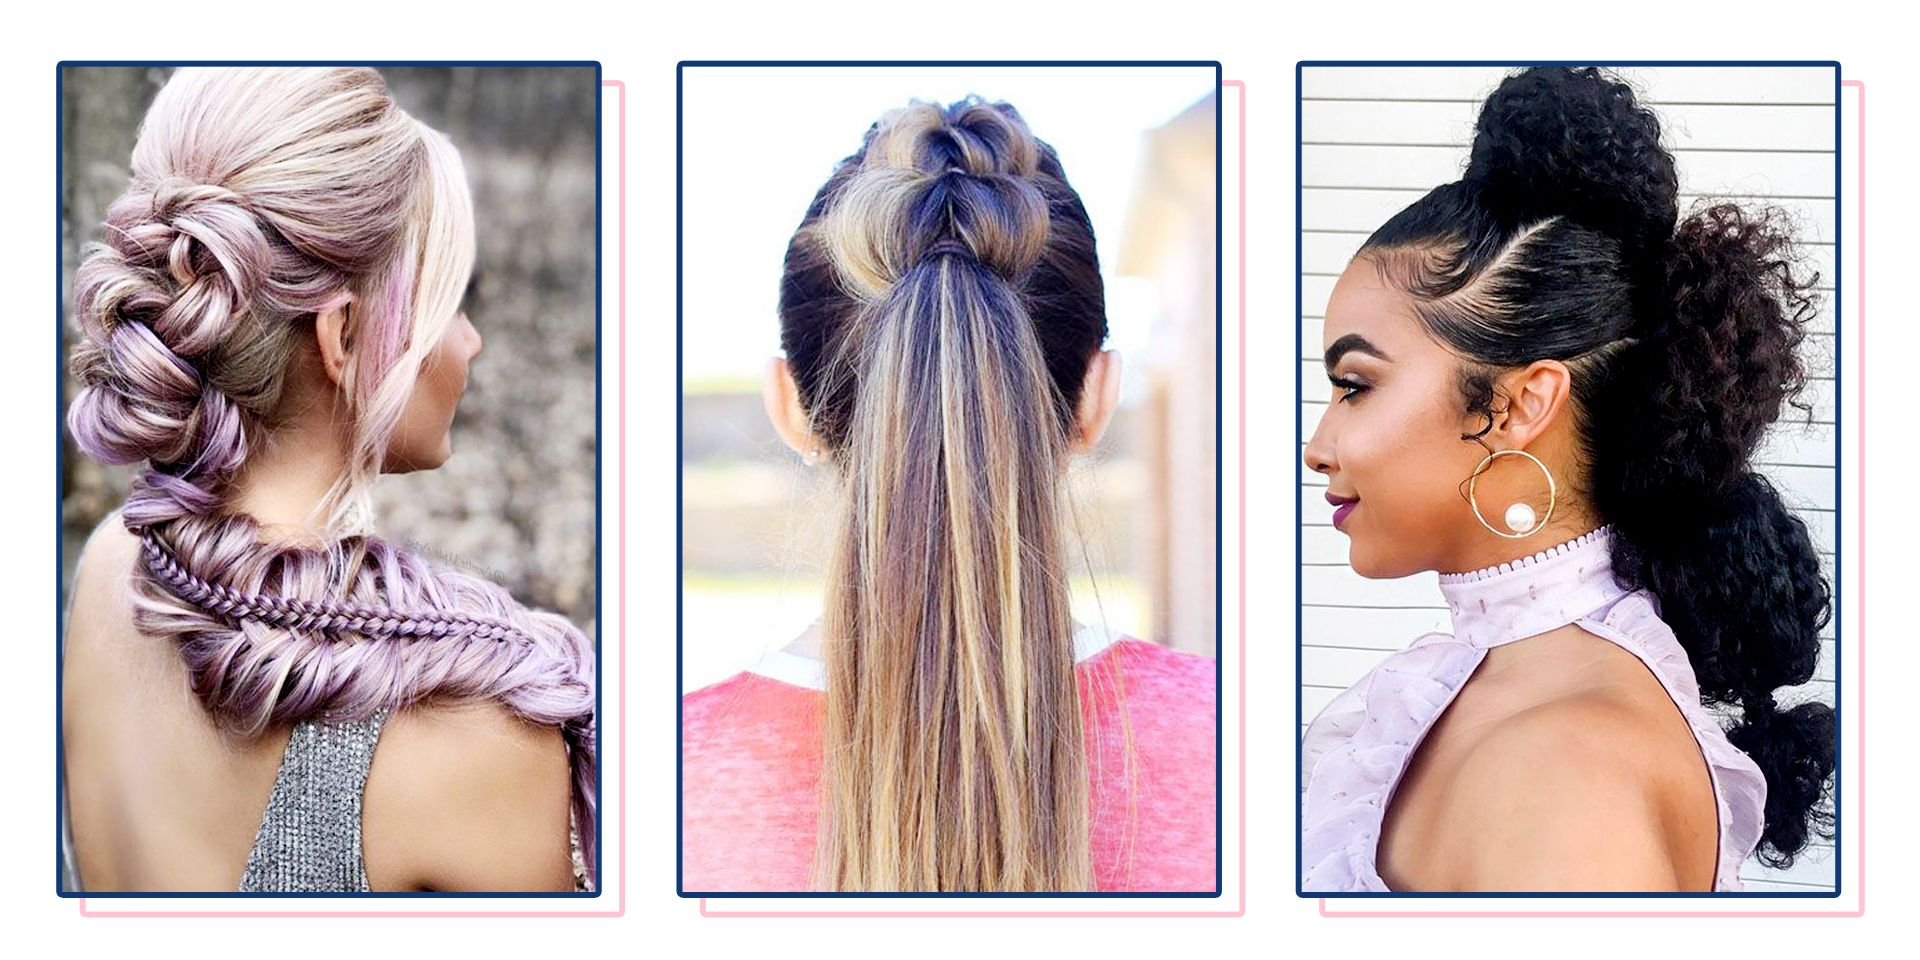 40 Best Prom Updos For 2019 – Easy Prom Updo Hairstyles For Current Messy High Bun Prom Updos (View 17 of 20)